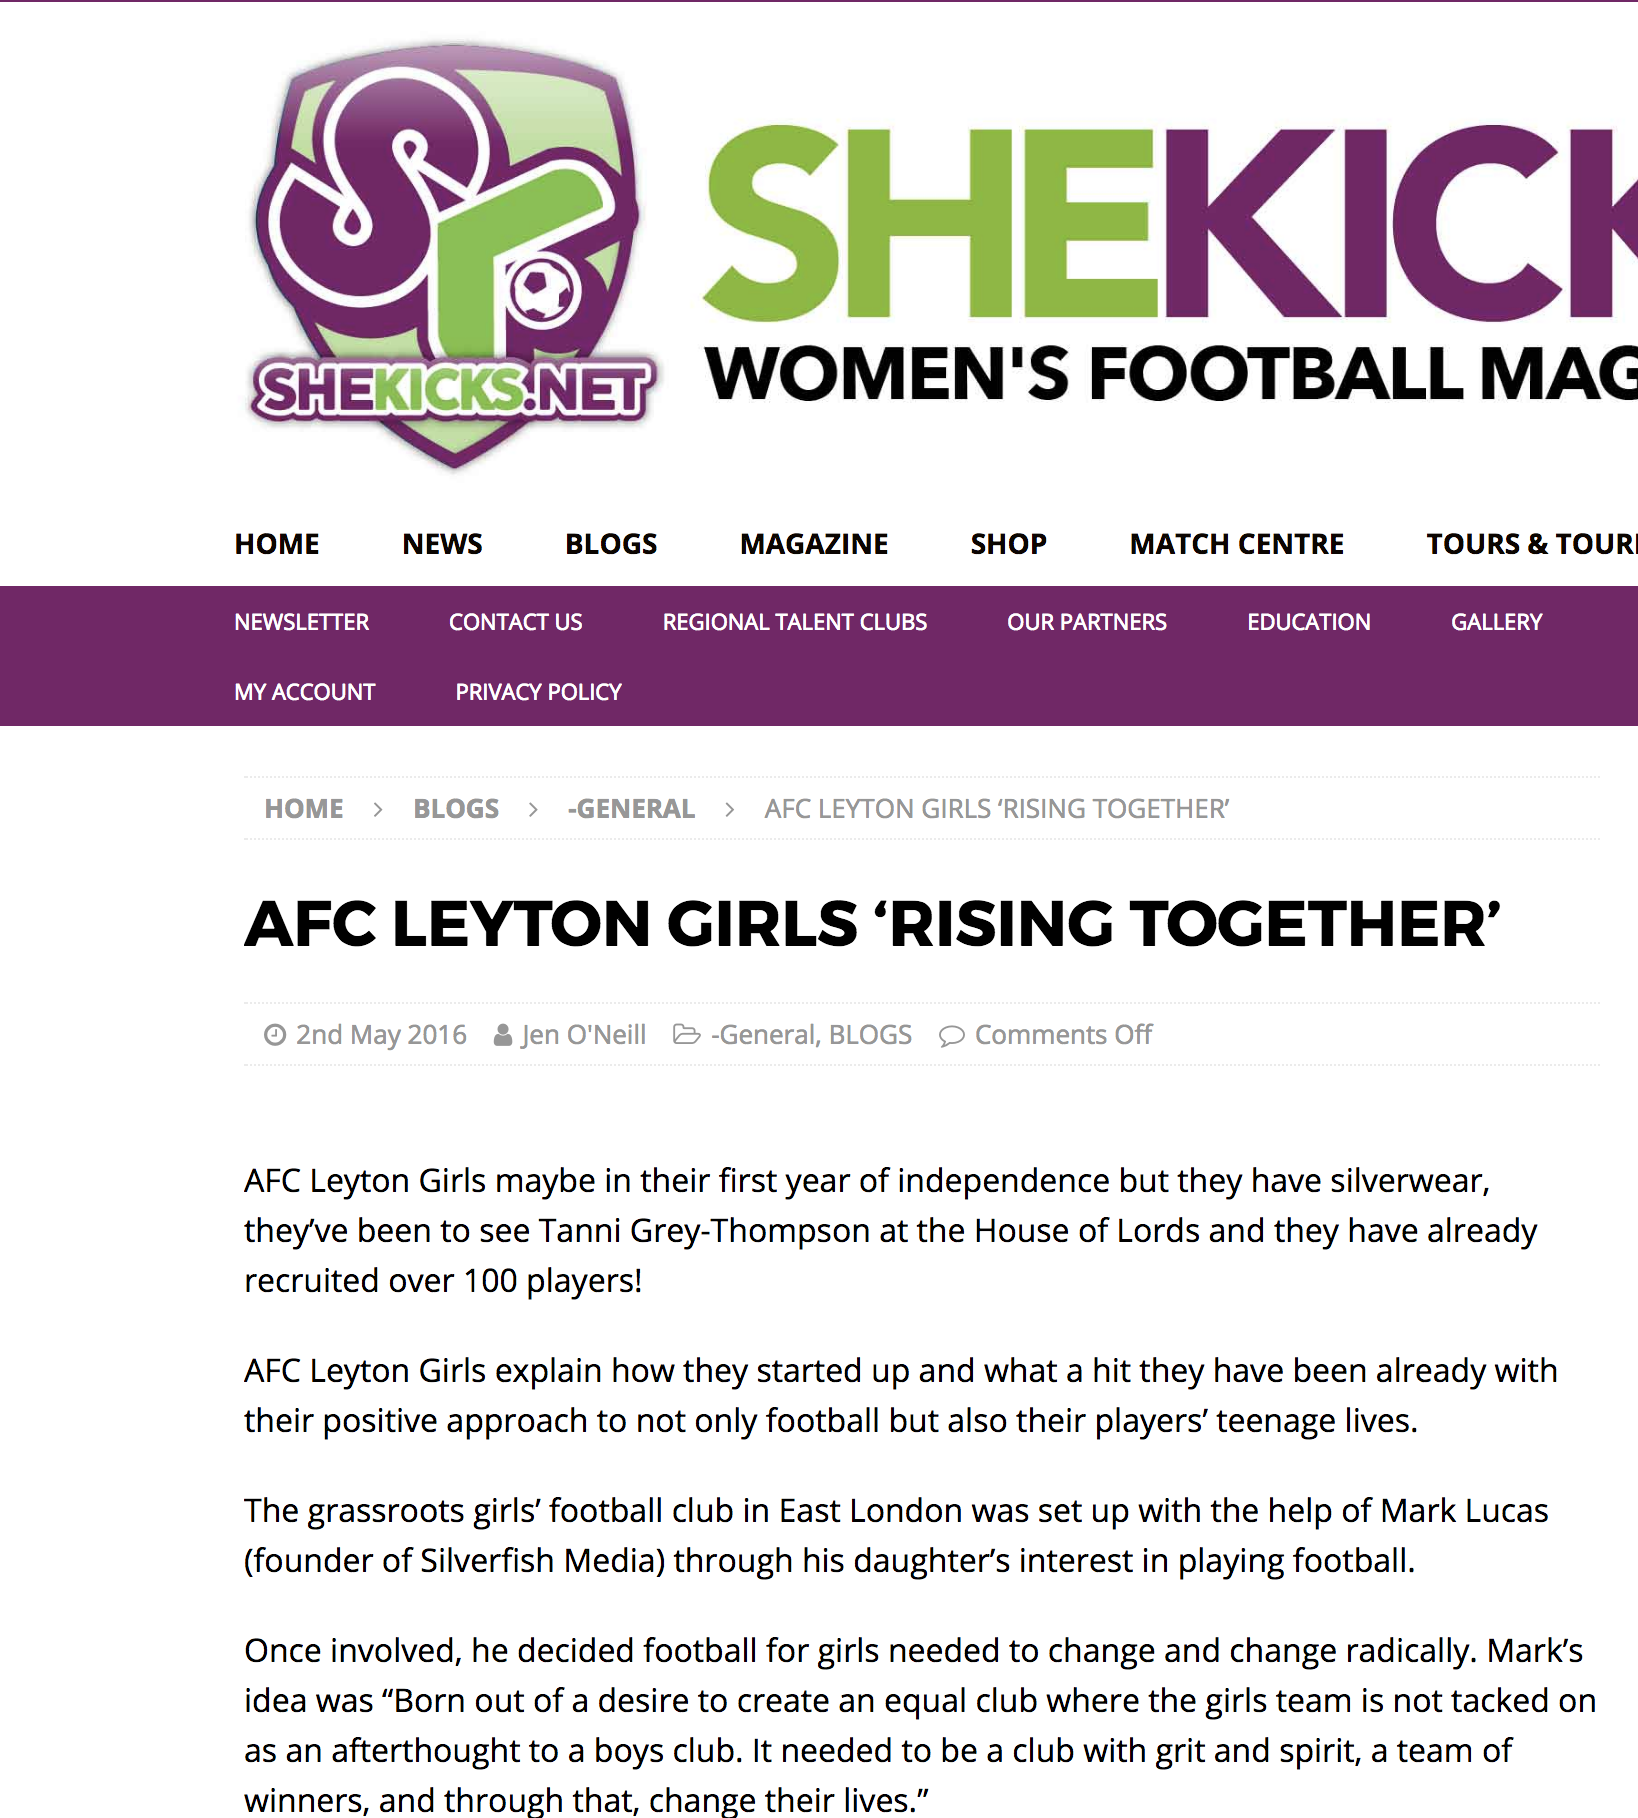 AFC Leyton Girls in their first year of independence